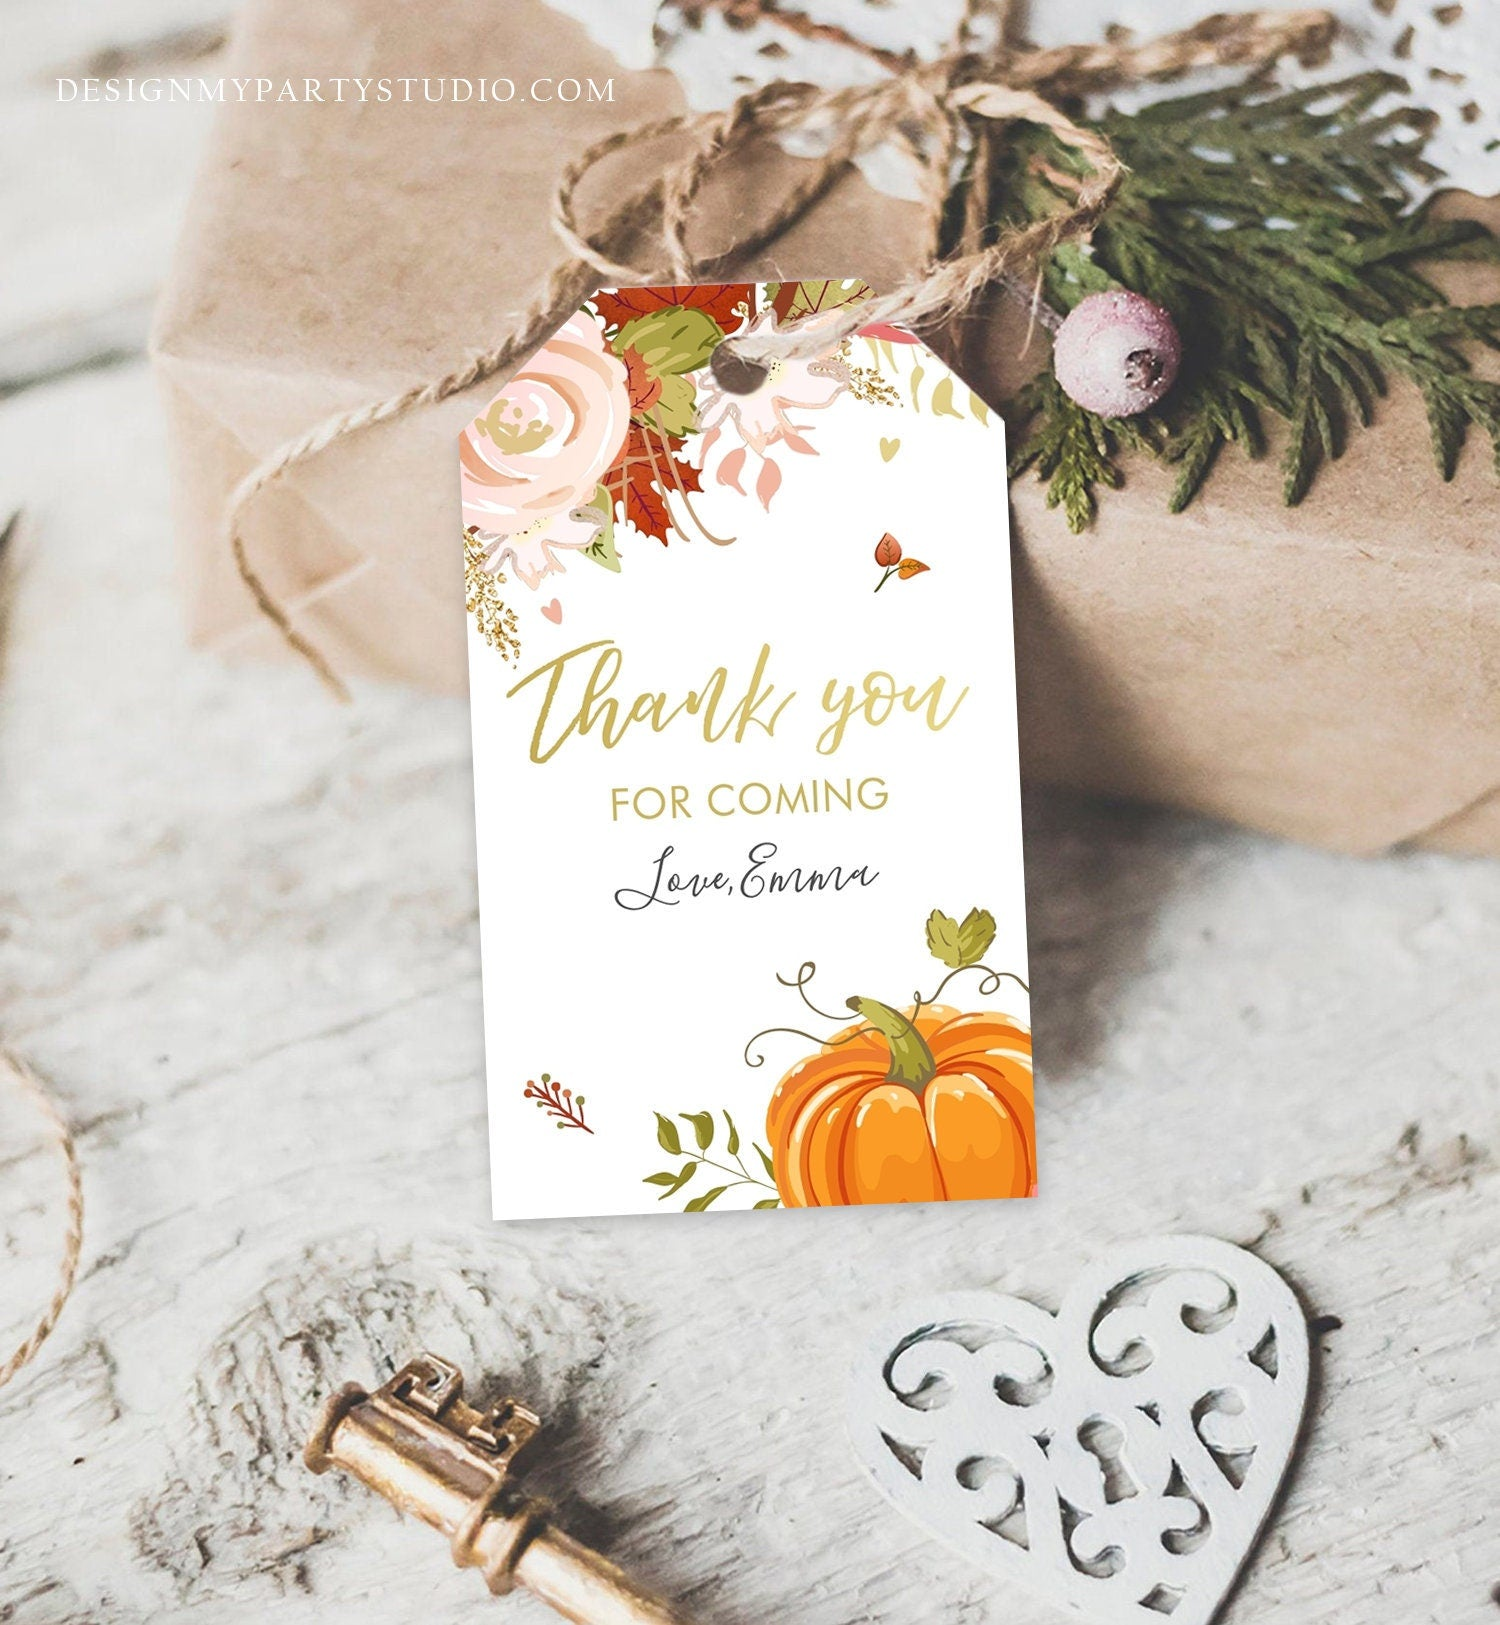 Editable Pumpkin Favor Tags Thank You Tag Fall In Love Bridal Shower Autumn Floral Flowers Pink Gold Orange Rustic Corjl Template 0176